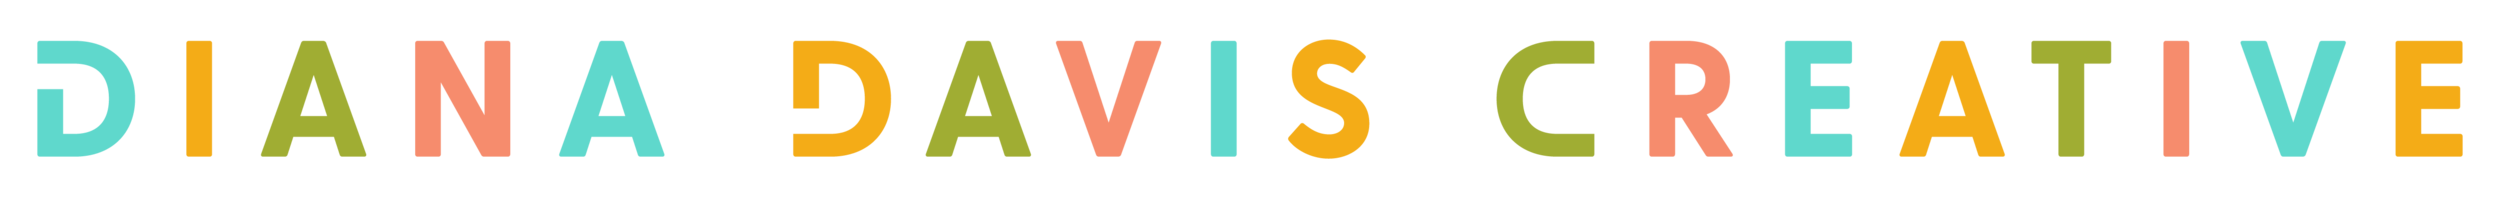 Primary_Logo_All_Colors_Diana_Davis_Creative.png